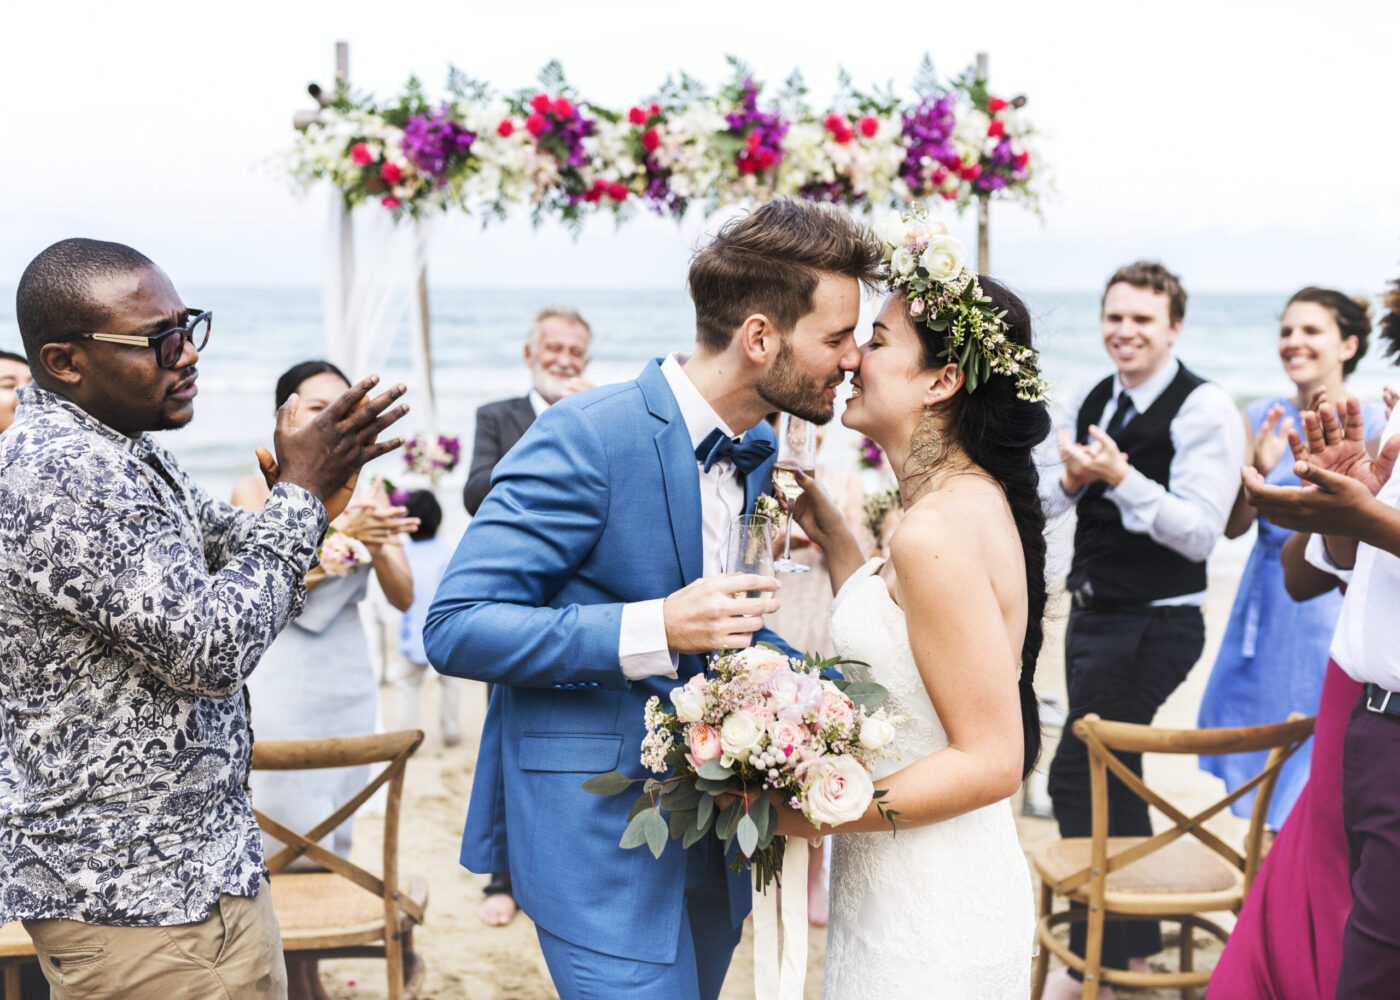 Young Couple Kissing At Wedding Reception